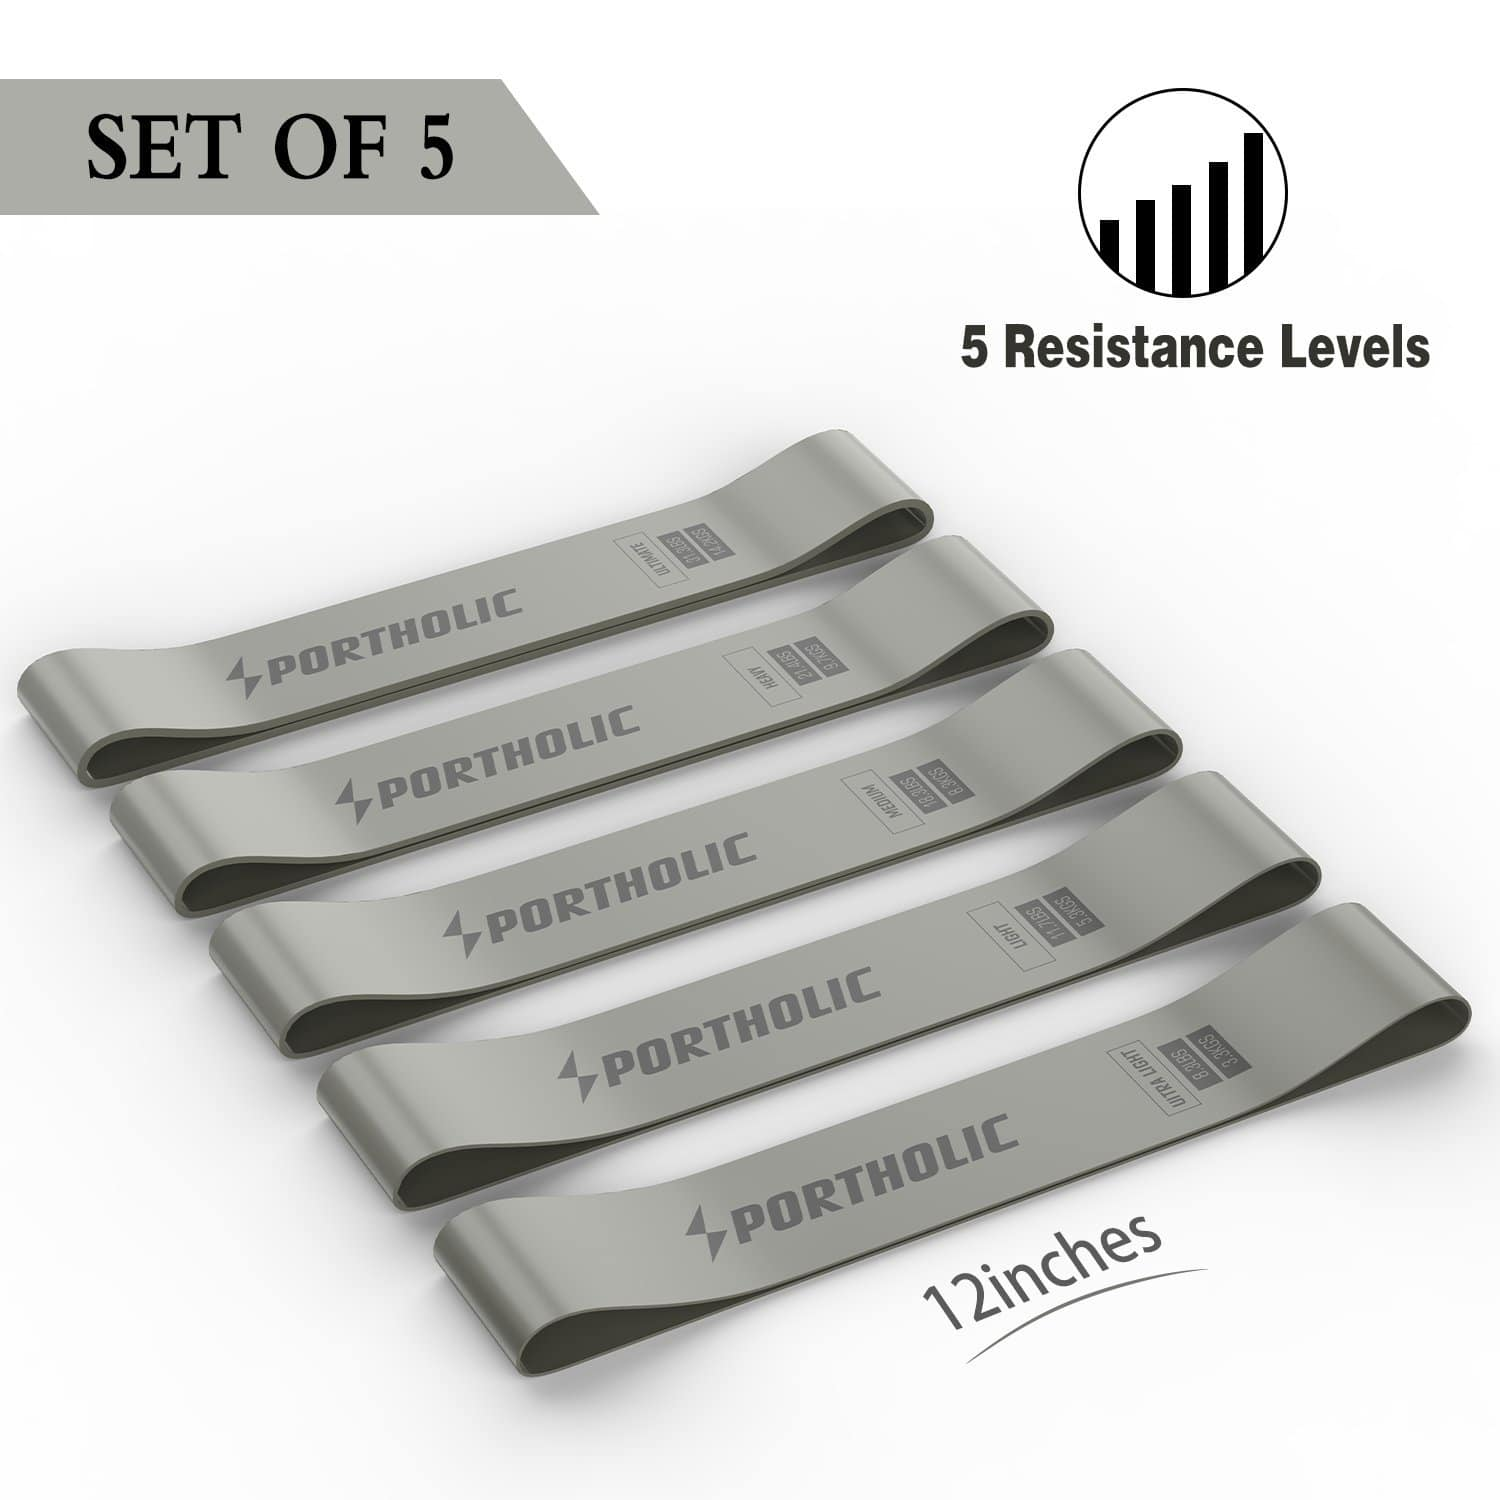 Set of 5 Exercise Resistance Loop Bands Home Fitness Yoga 12-Inch $6.76 FS w/Prime